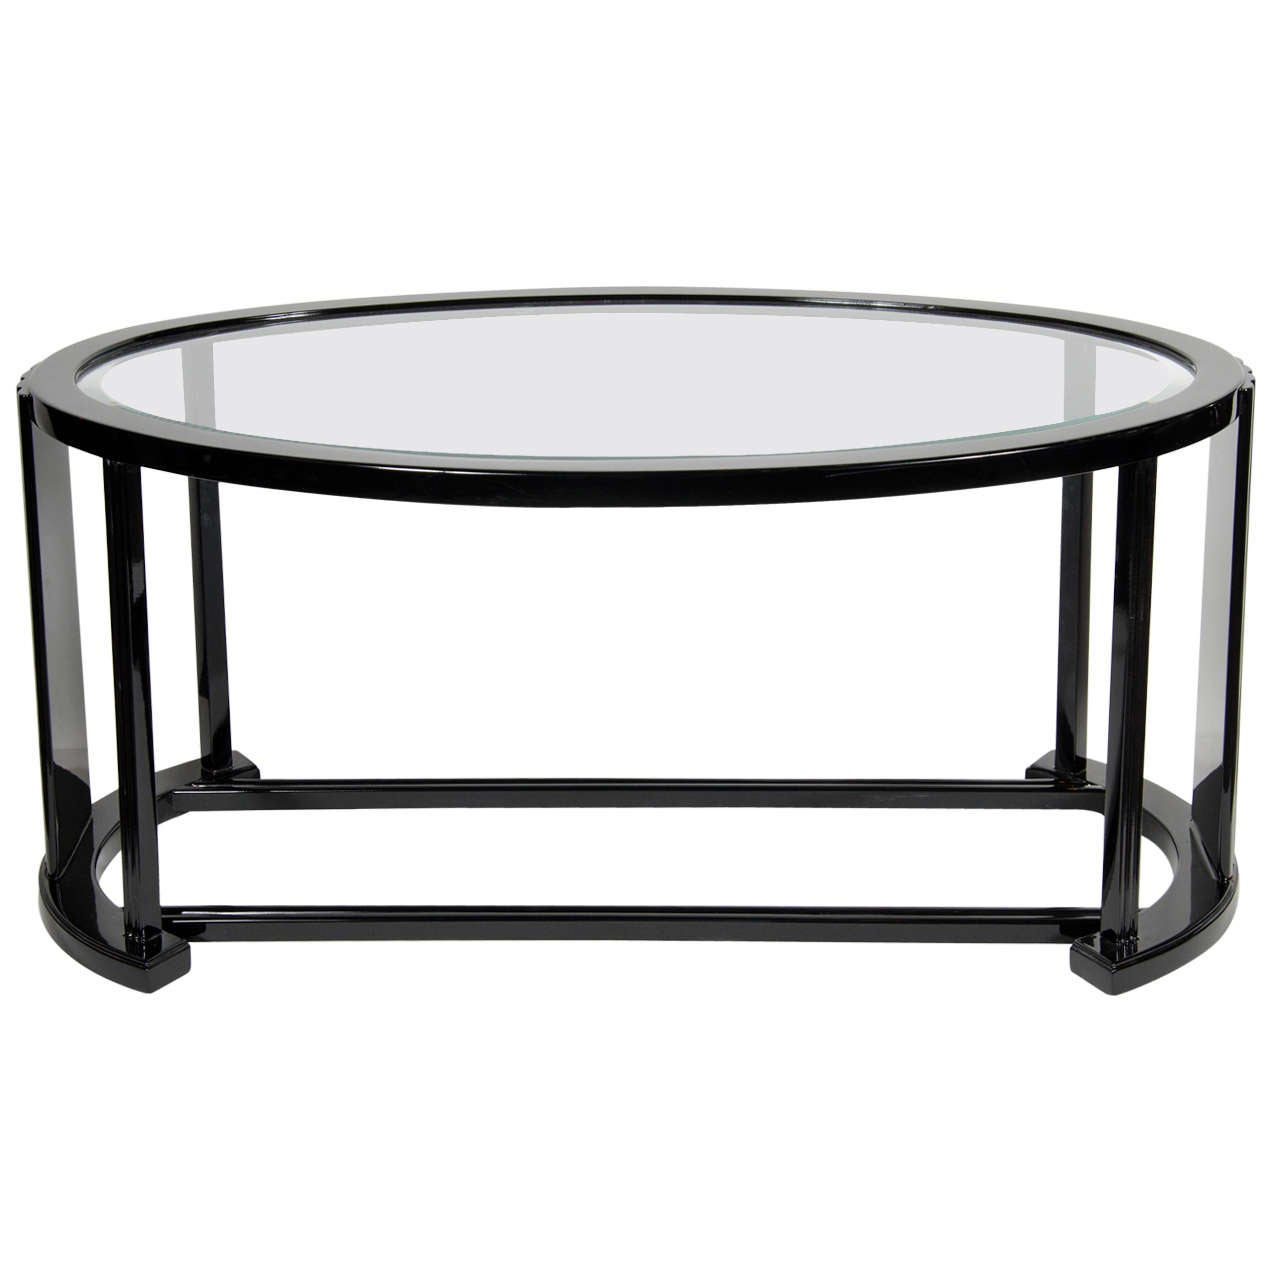 Art Deco Bauhaus Influence Ovoid Cocktail Table At 1stdibs